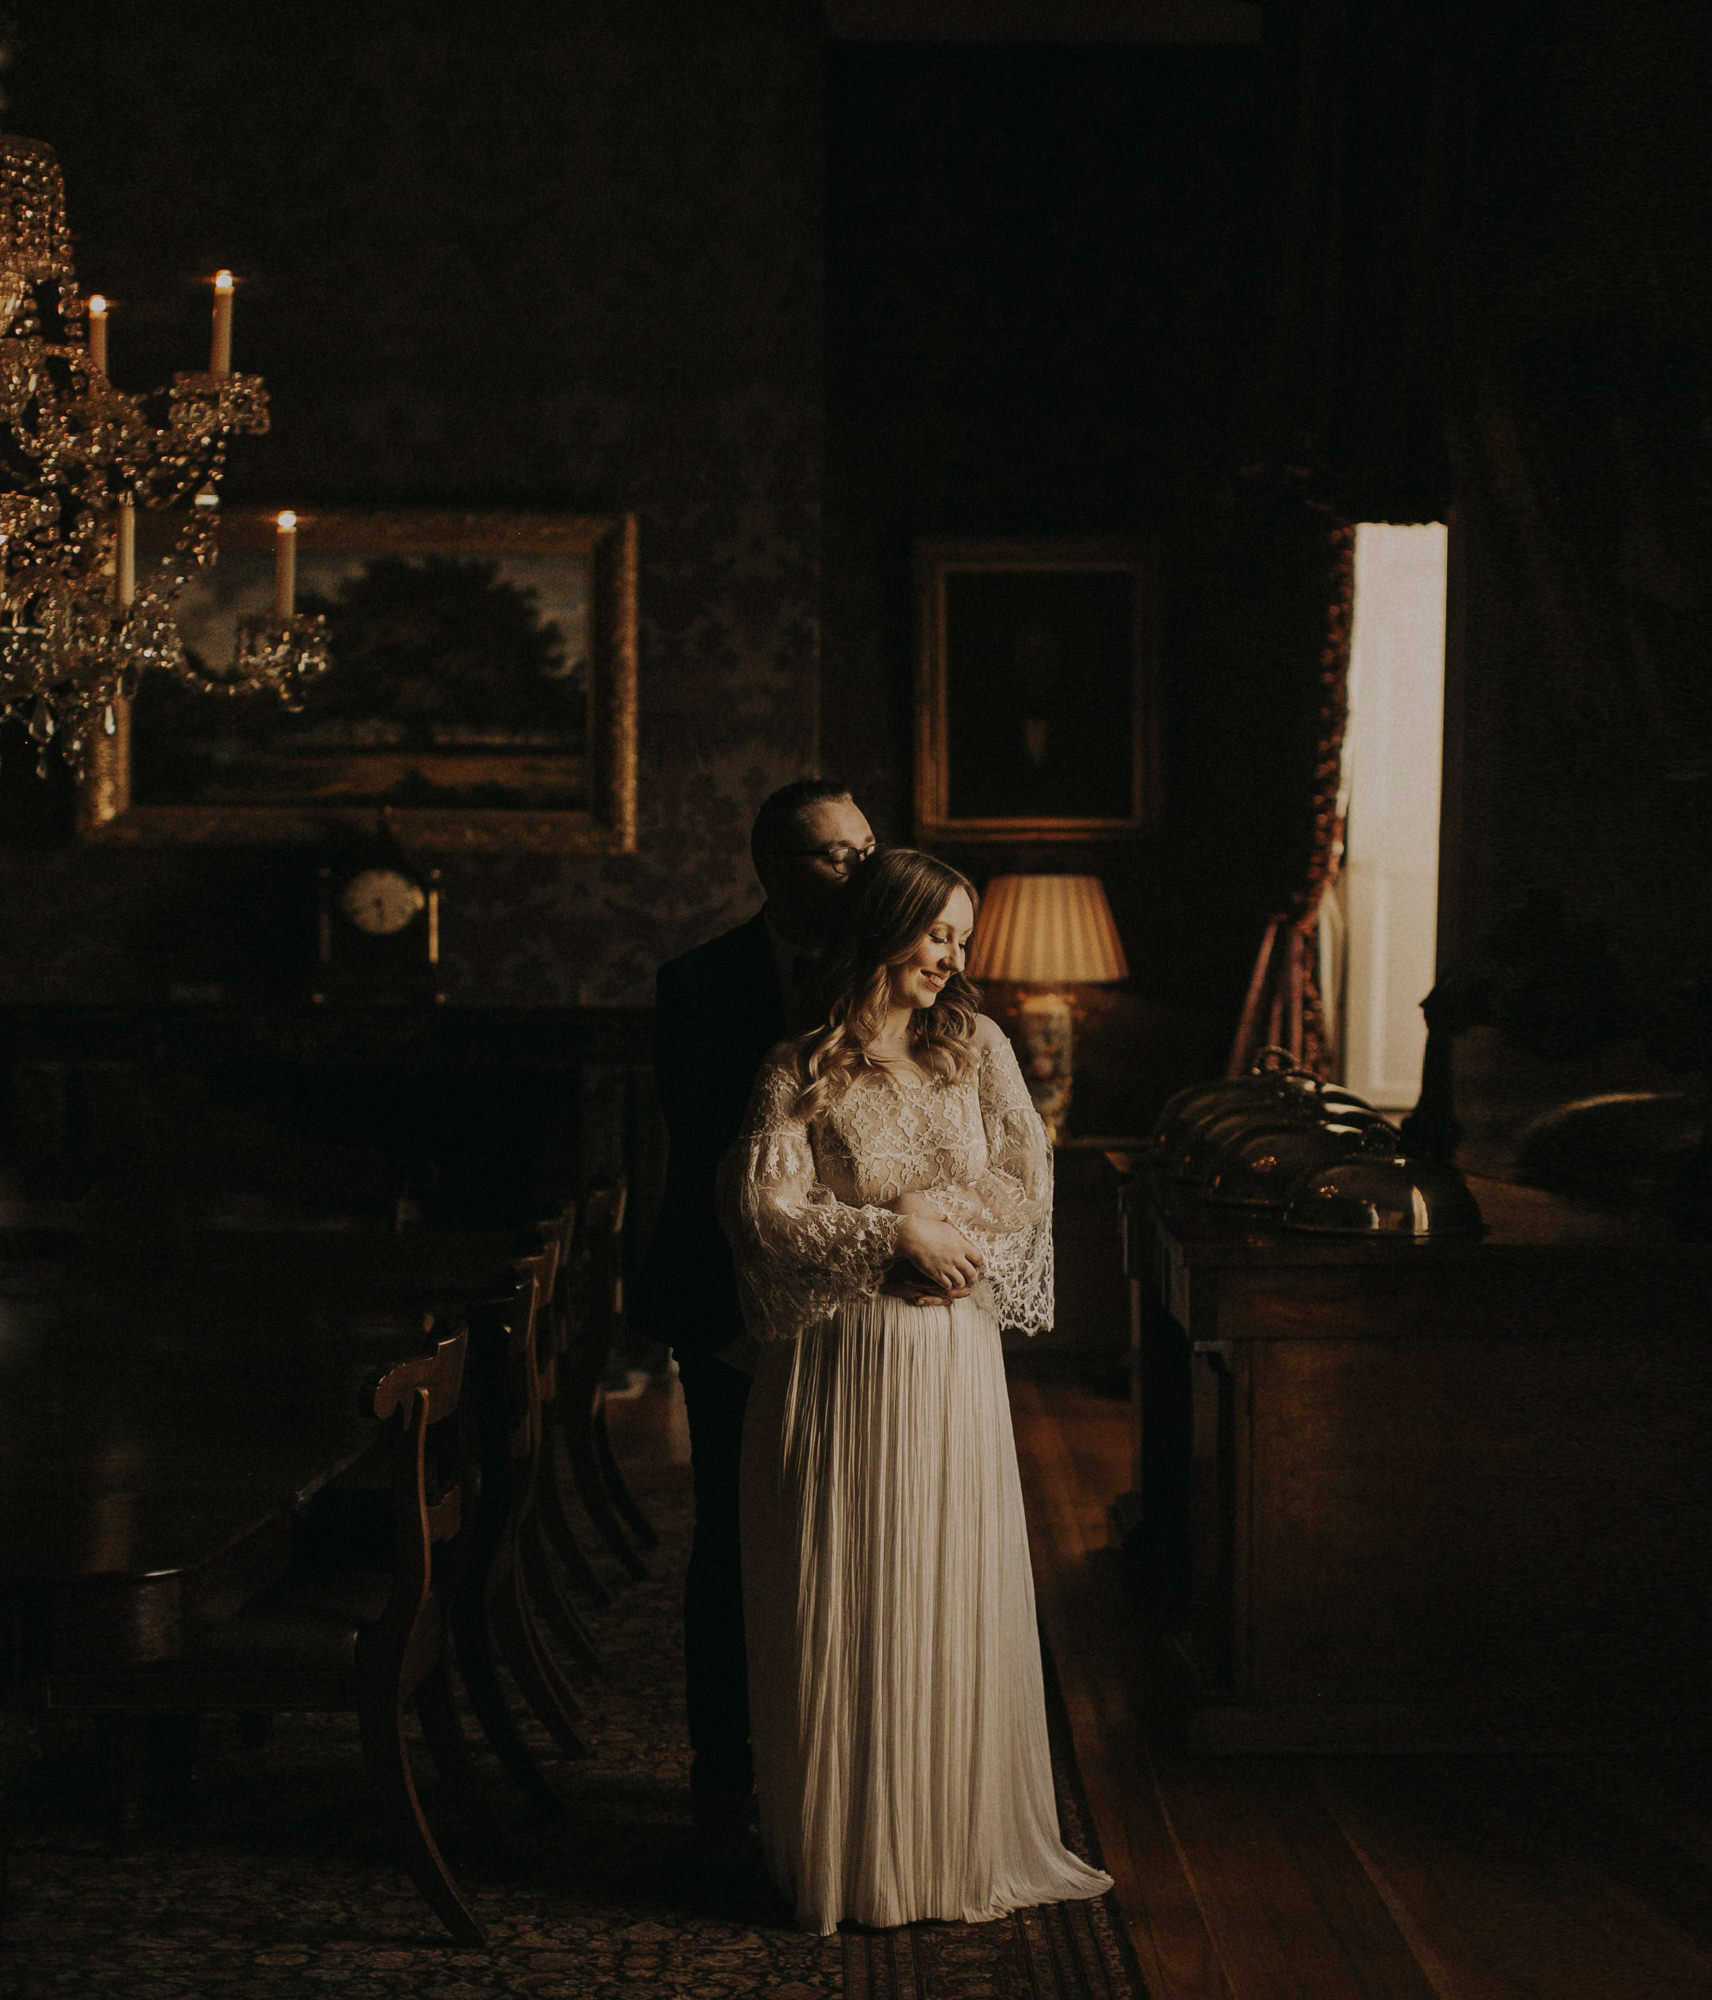 bride-in-long-sleeve-vintage-gown-with-groom-in-room-worlds-best-wedding-photos-dan-o-day-australia-wedding-photographer